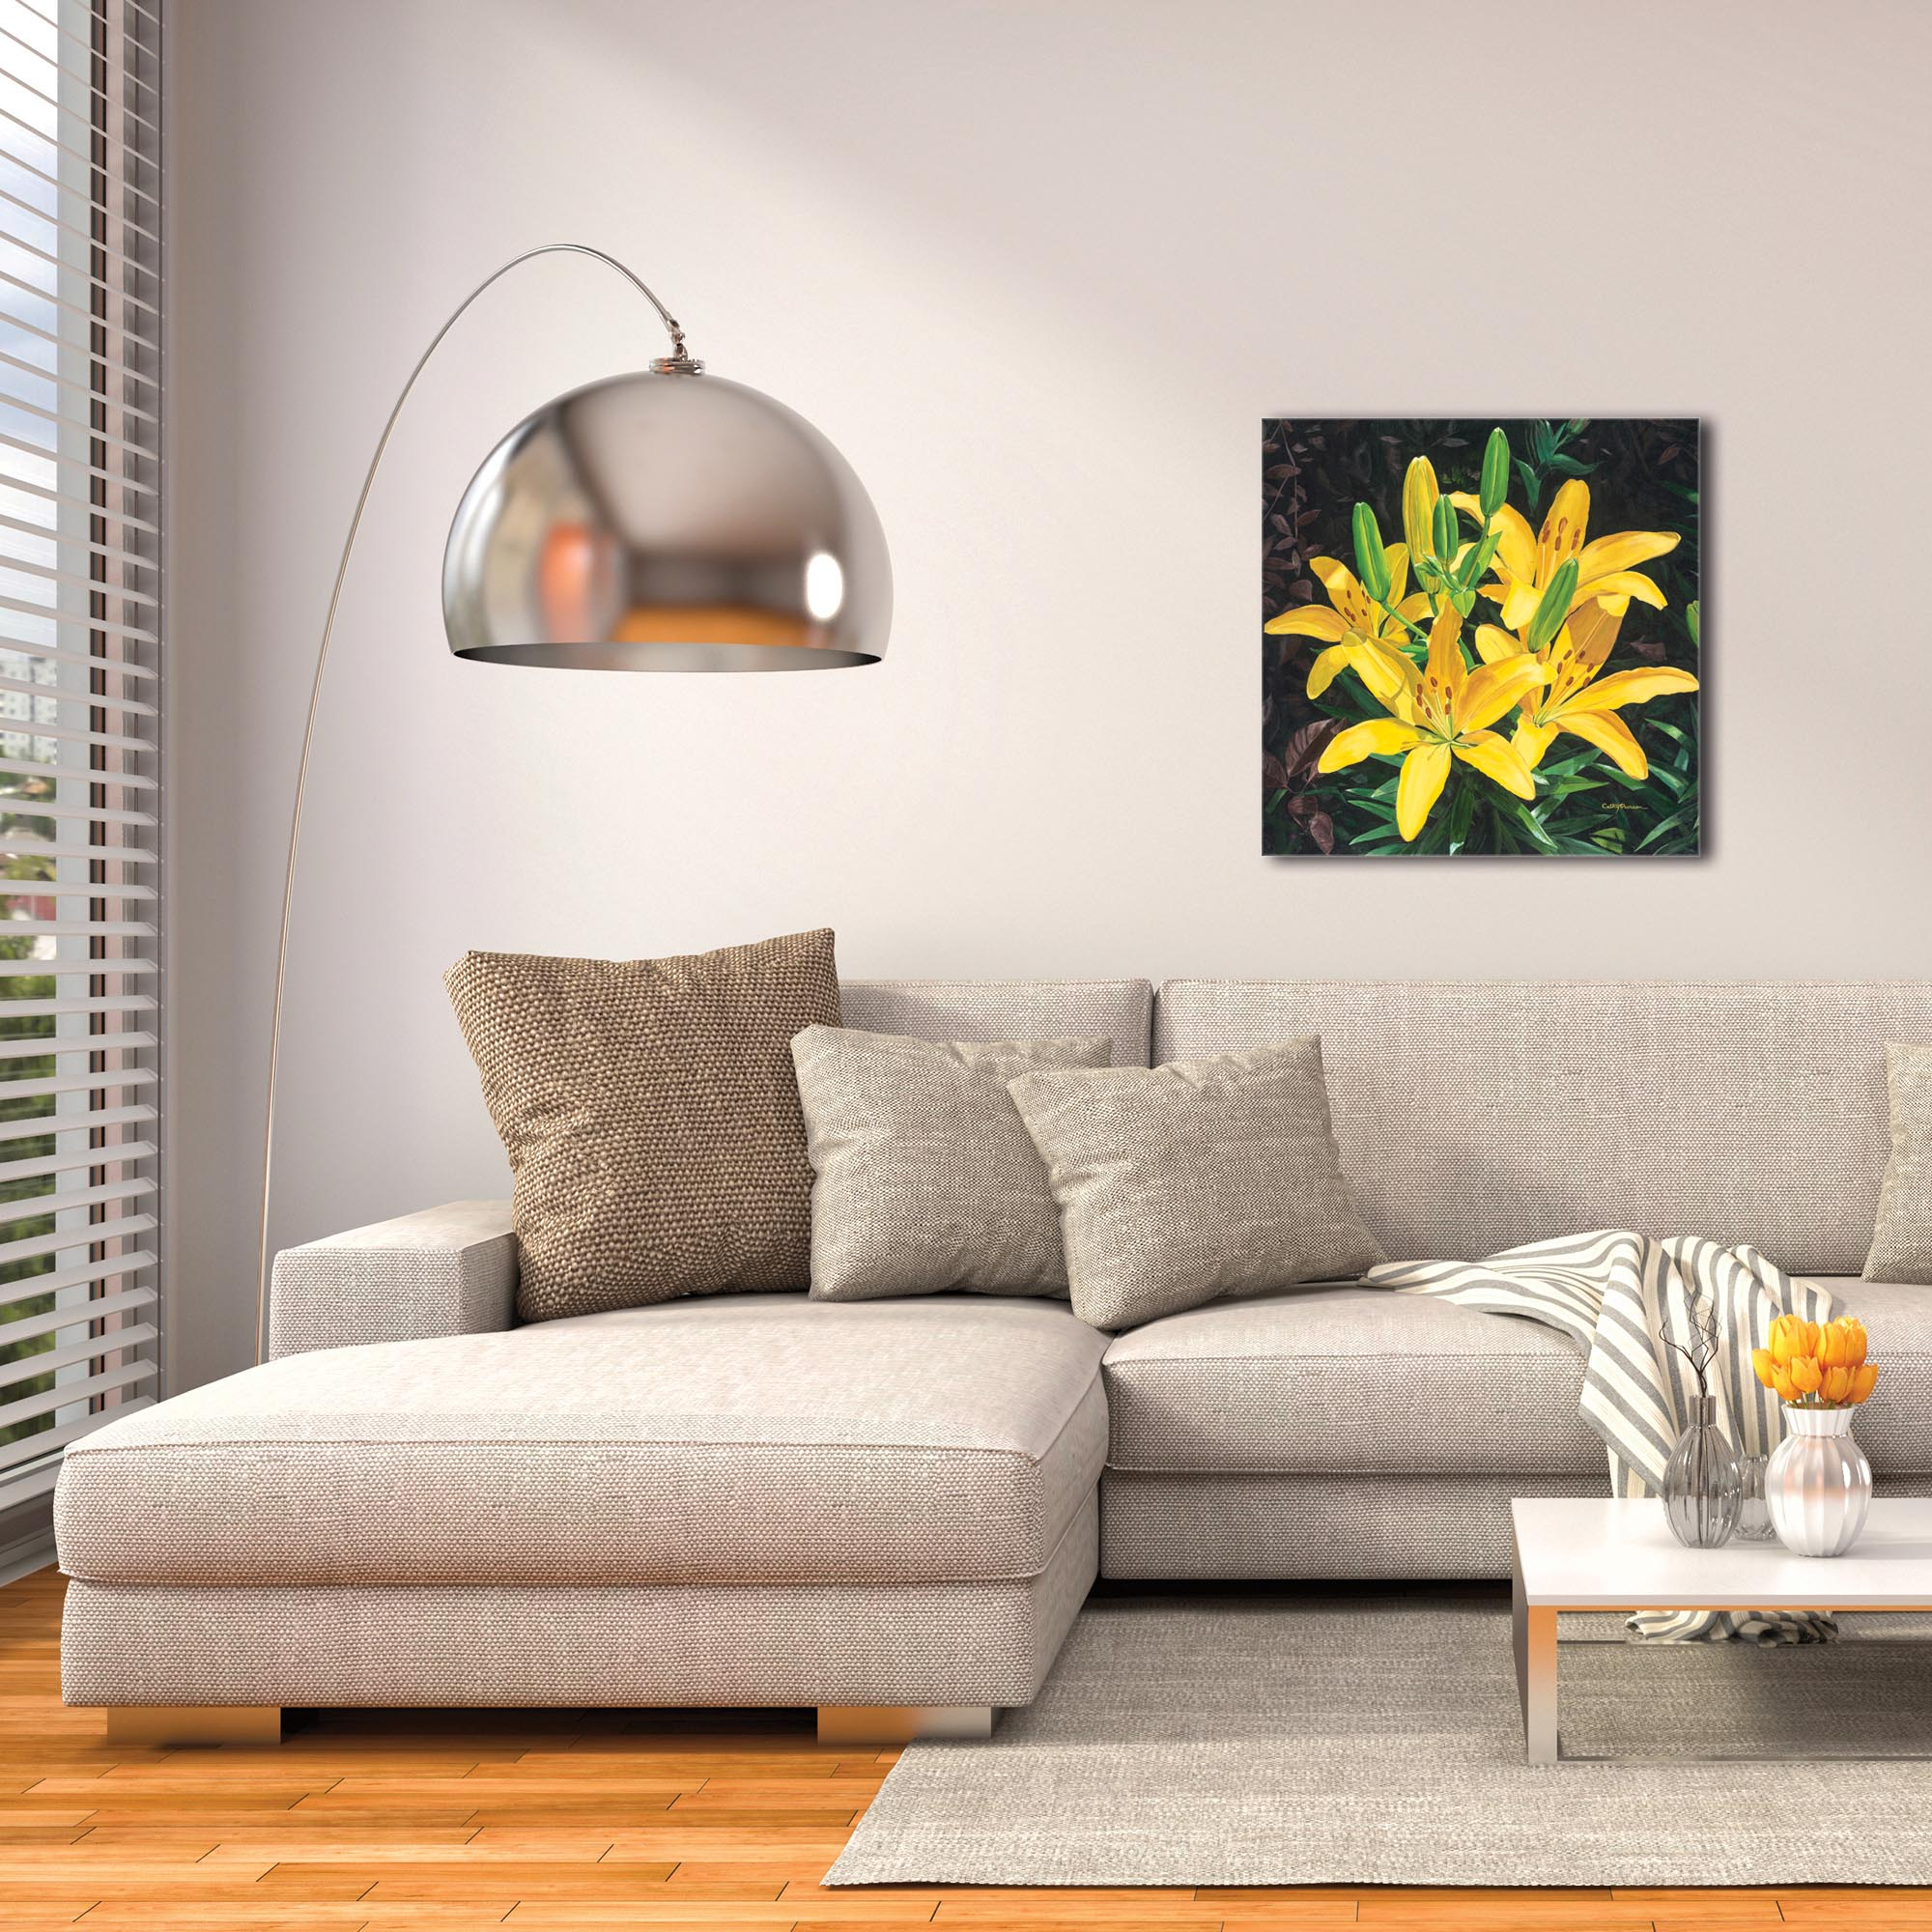 Traditional Wall Art 'Yellow Lilies' - Floral Decor on Metal or Plexiglass - Image 3